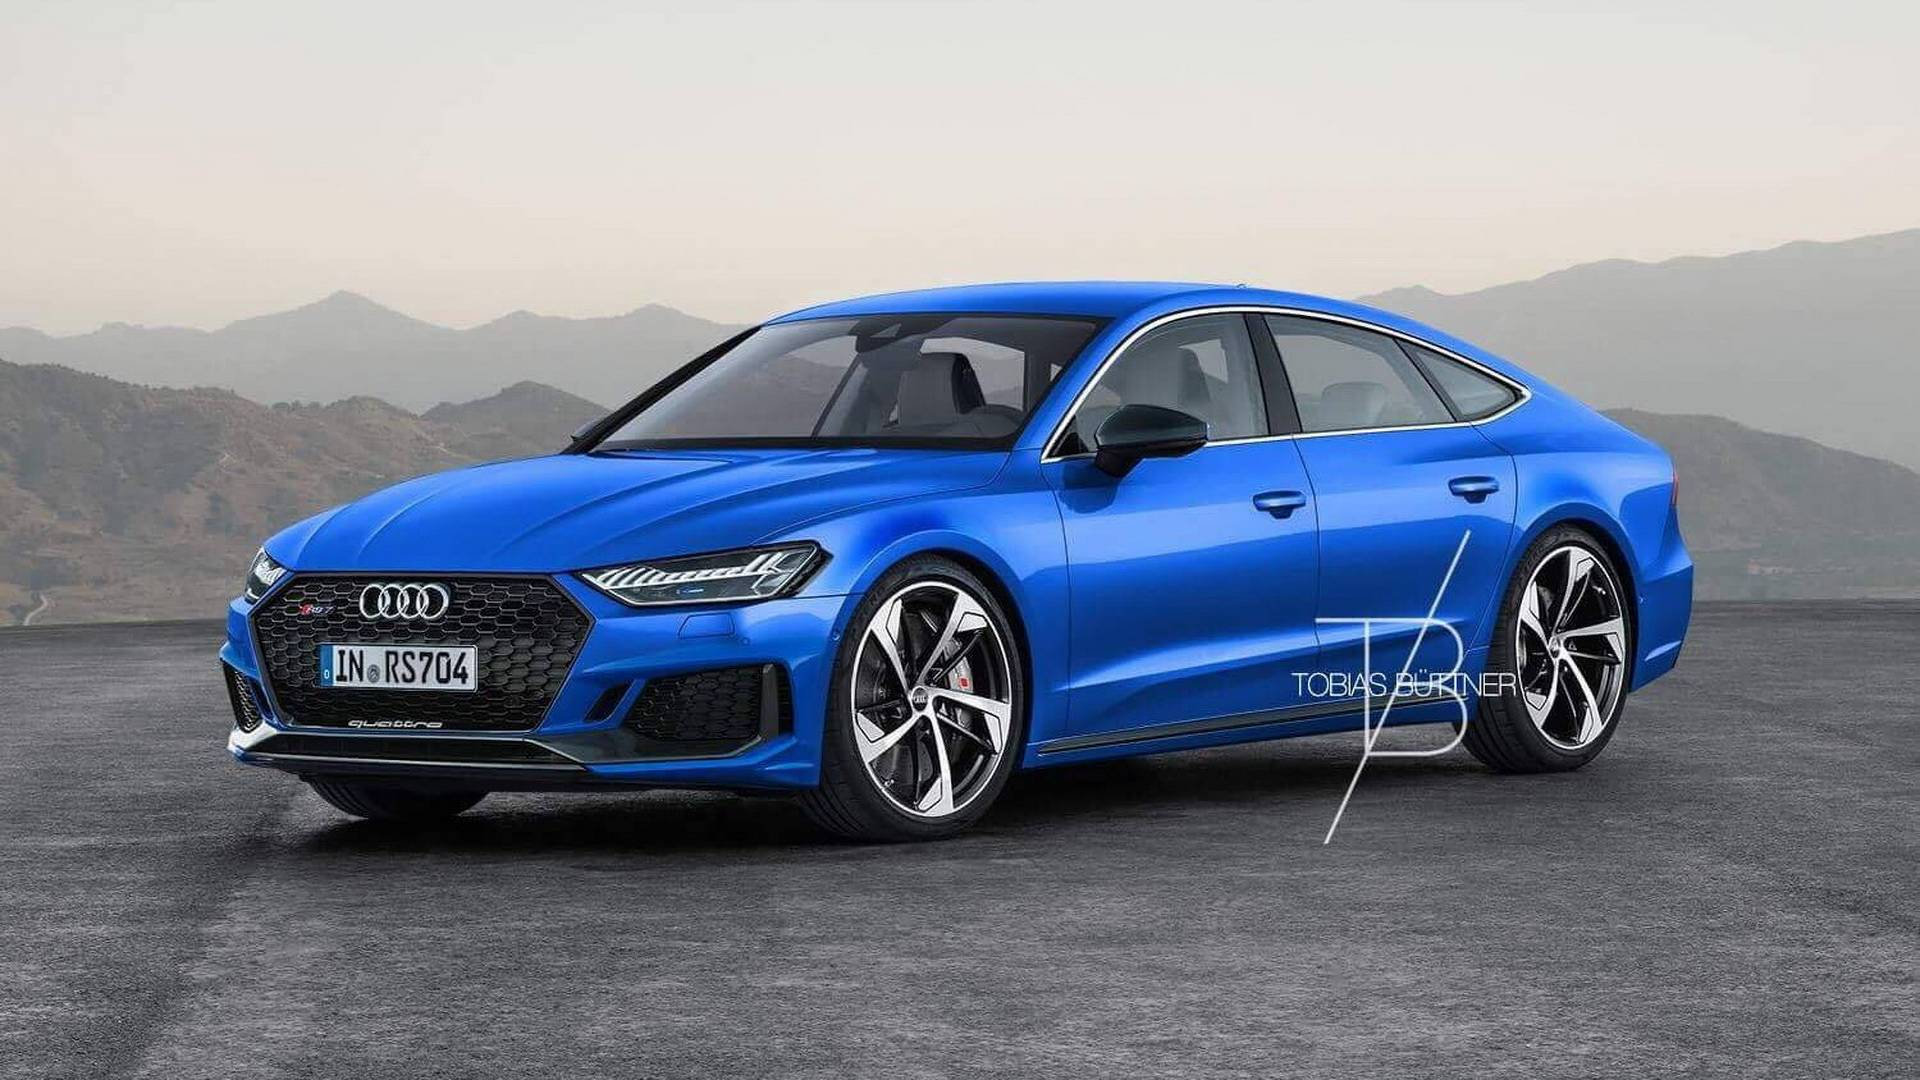 2019 audi rs7 rendered could come with 700 hp hybrid. Black Bedroom Furniture Sets. Home Design Ideas